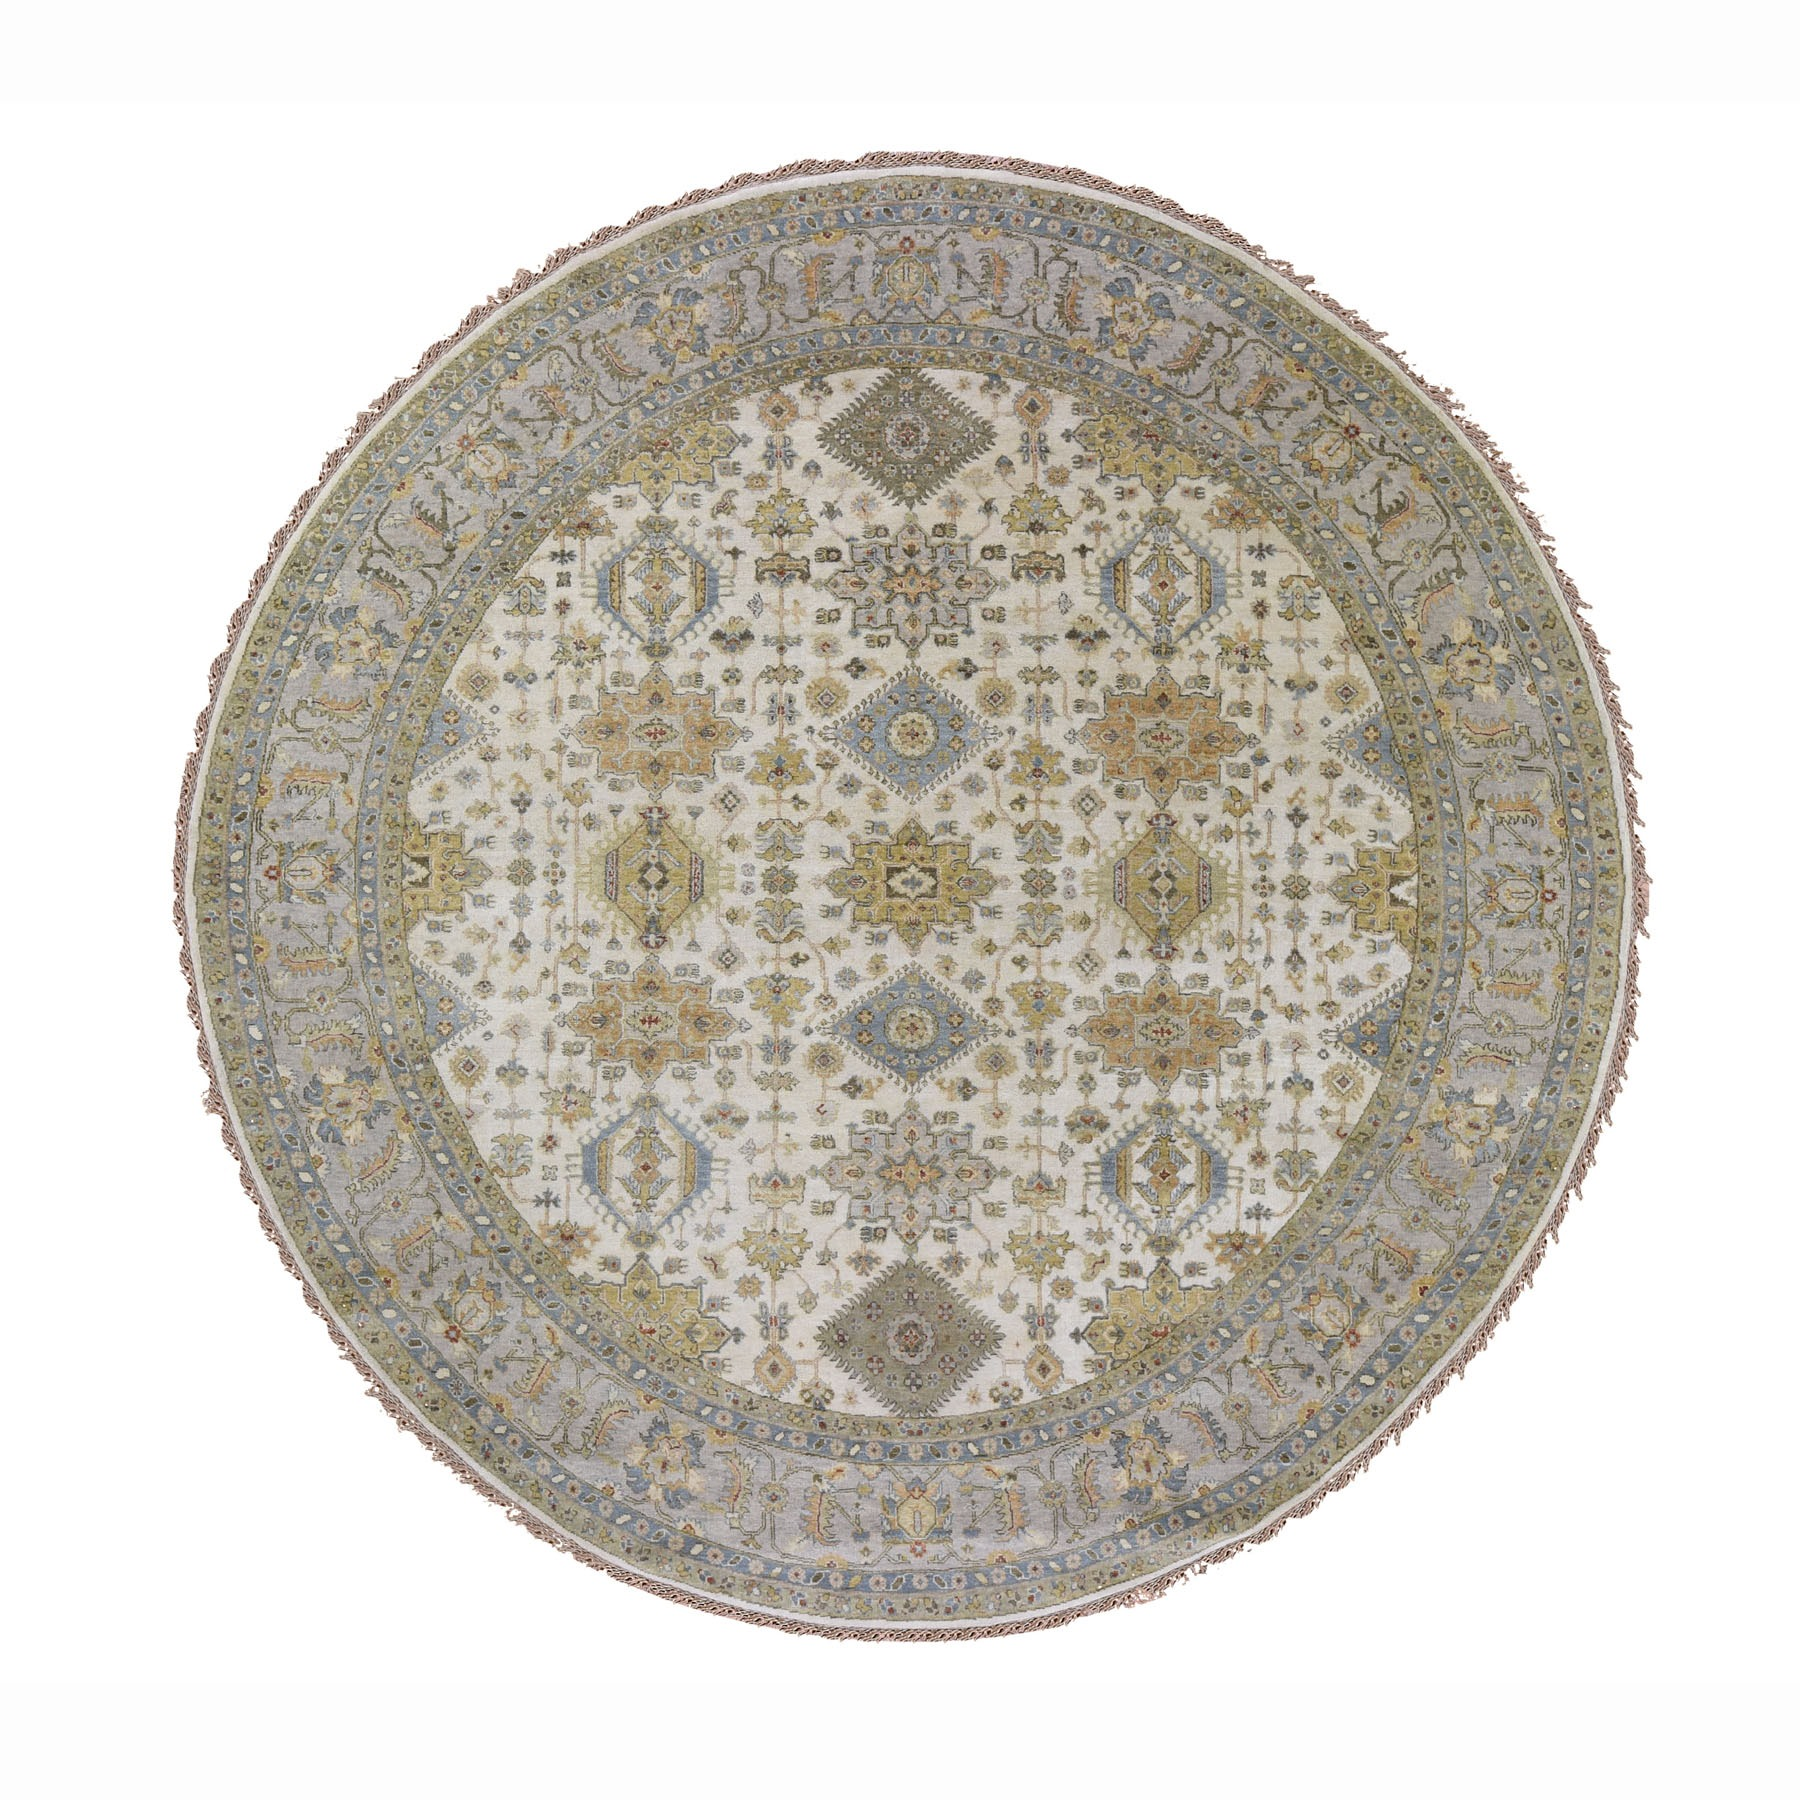 10'X10' Round Ivory Karajeh Design Pure Wool Hand Knotted Oriental Rug moad787a